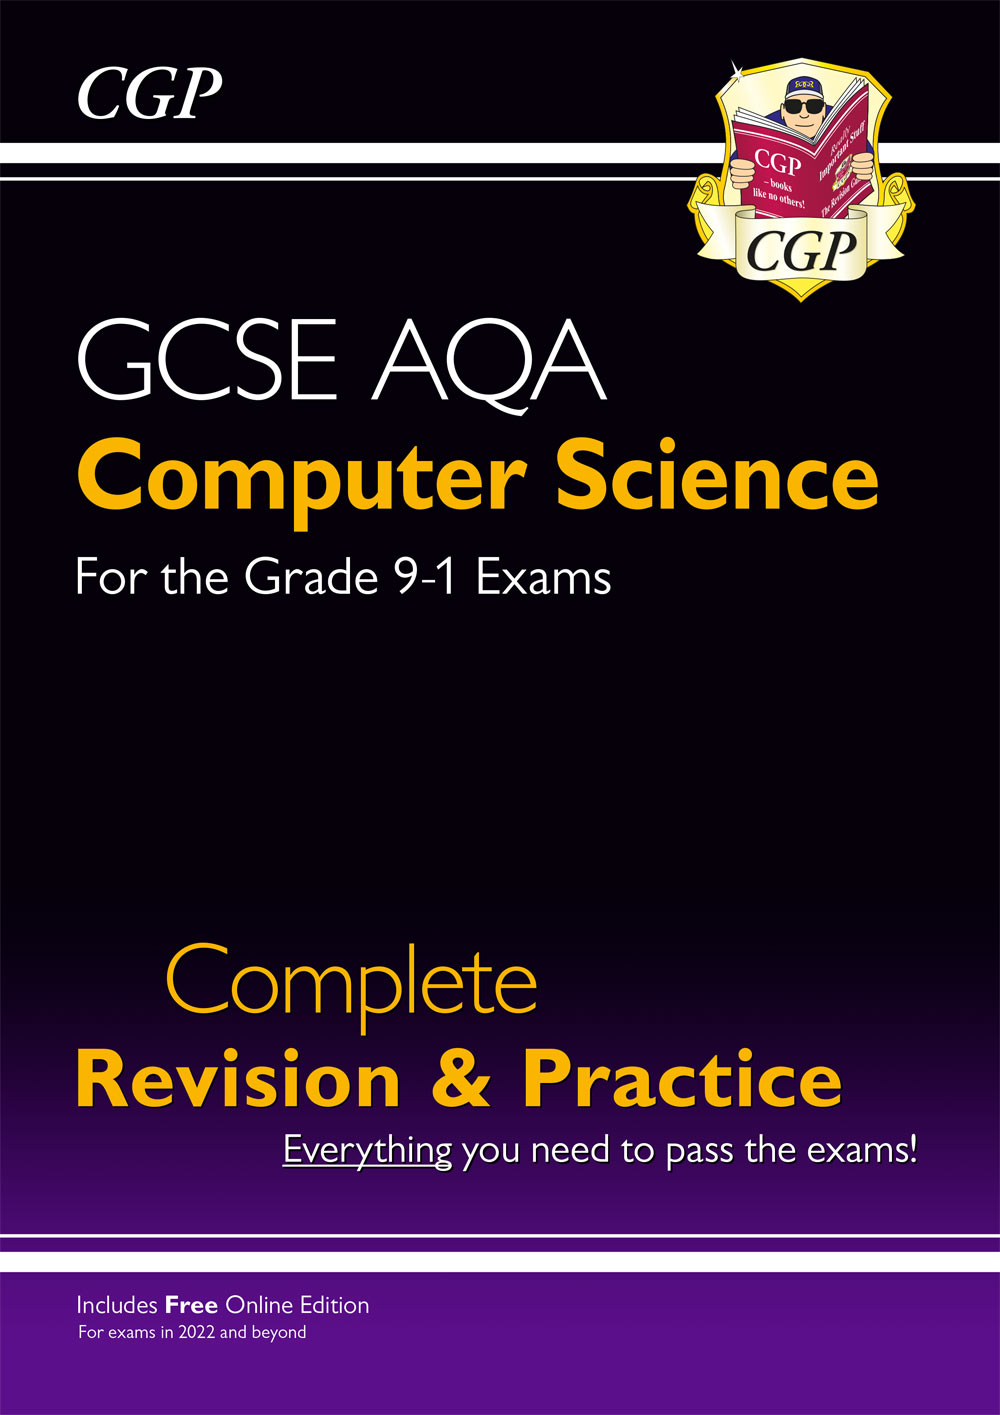 COAS42 - New GCSE Computer Science AQA Complete Revision & Practice - for exams in 2022 and beyond